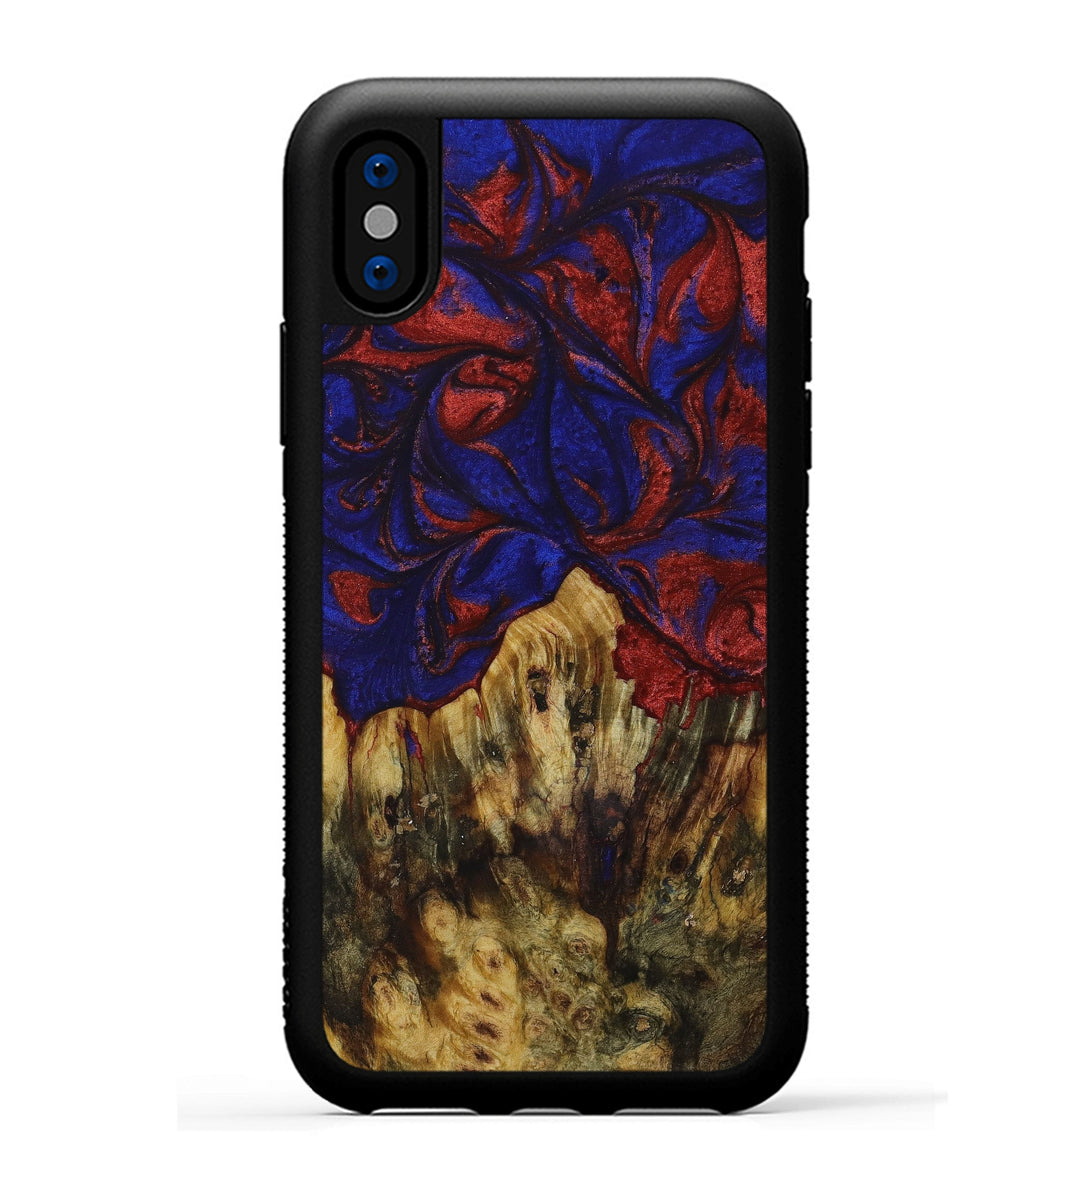 iPhone X Wood+Resin Phone Case - Elysee (Blue & Red, 395980)